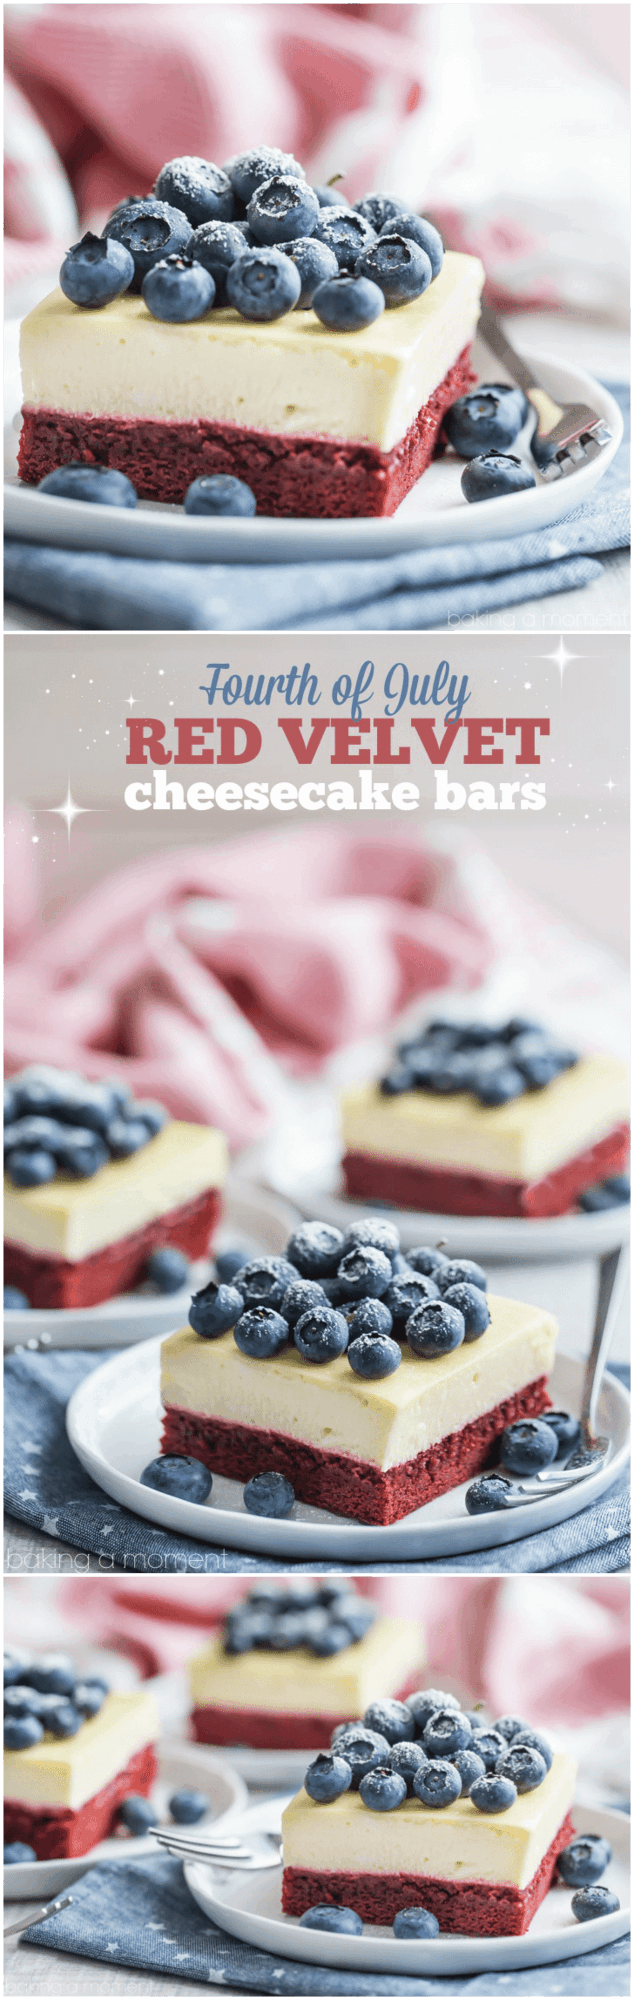 I made these red velvet cheesecake bars for the 4th of July and they were a big hit! The bottom layer had such a great cocoa/buttermilk flavor, and the cheesecake was so creamy!